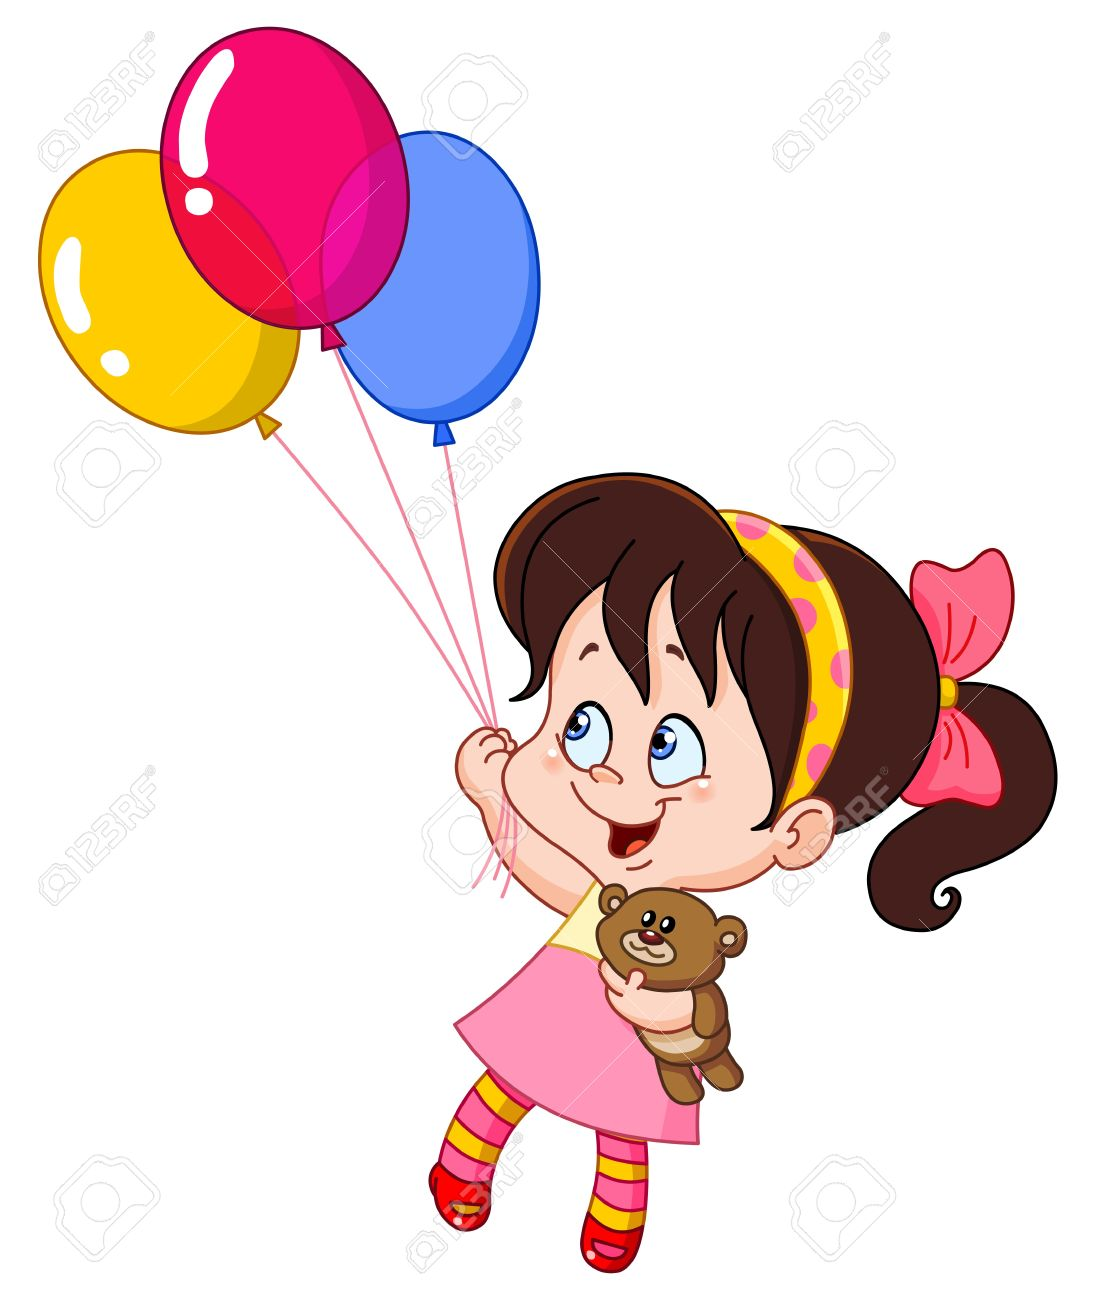 1096x1300 26,229 Balloon Girl Stock Vector Illustration And Royalty Free